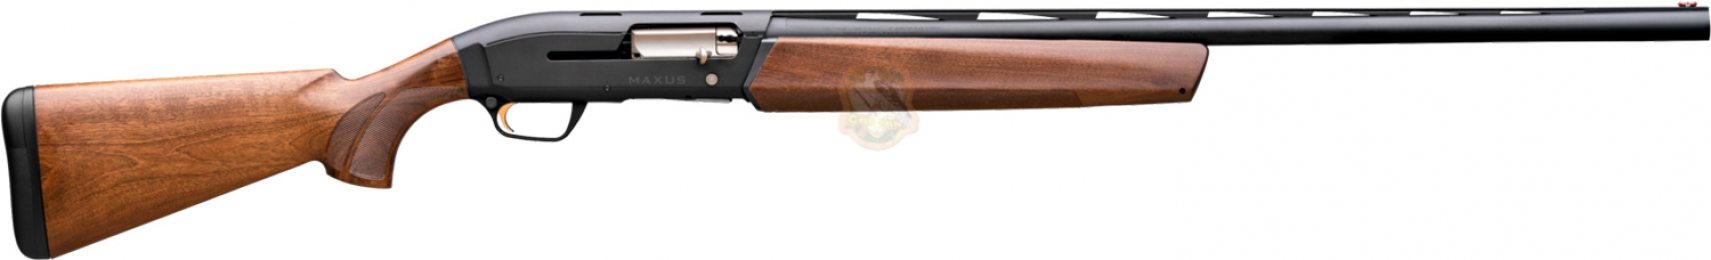 Ружье Browning Maxus One кал. 12/76. Ствол - 76 см